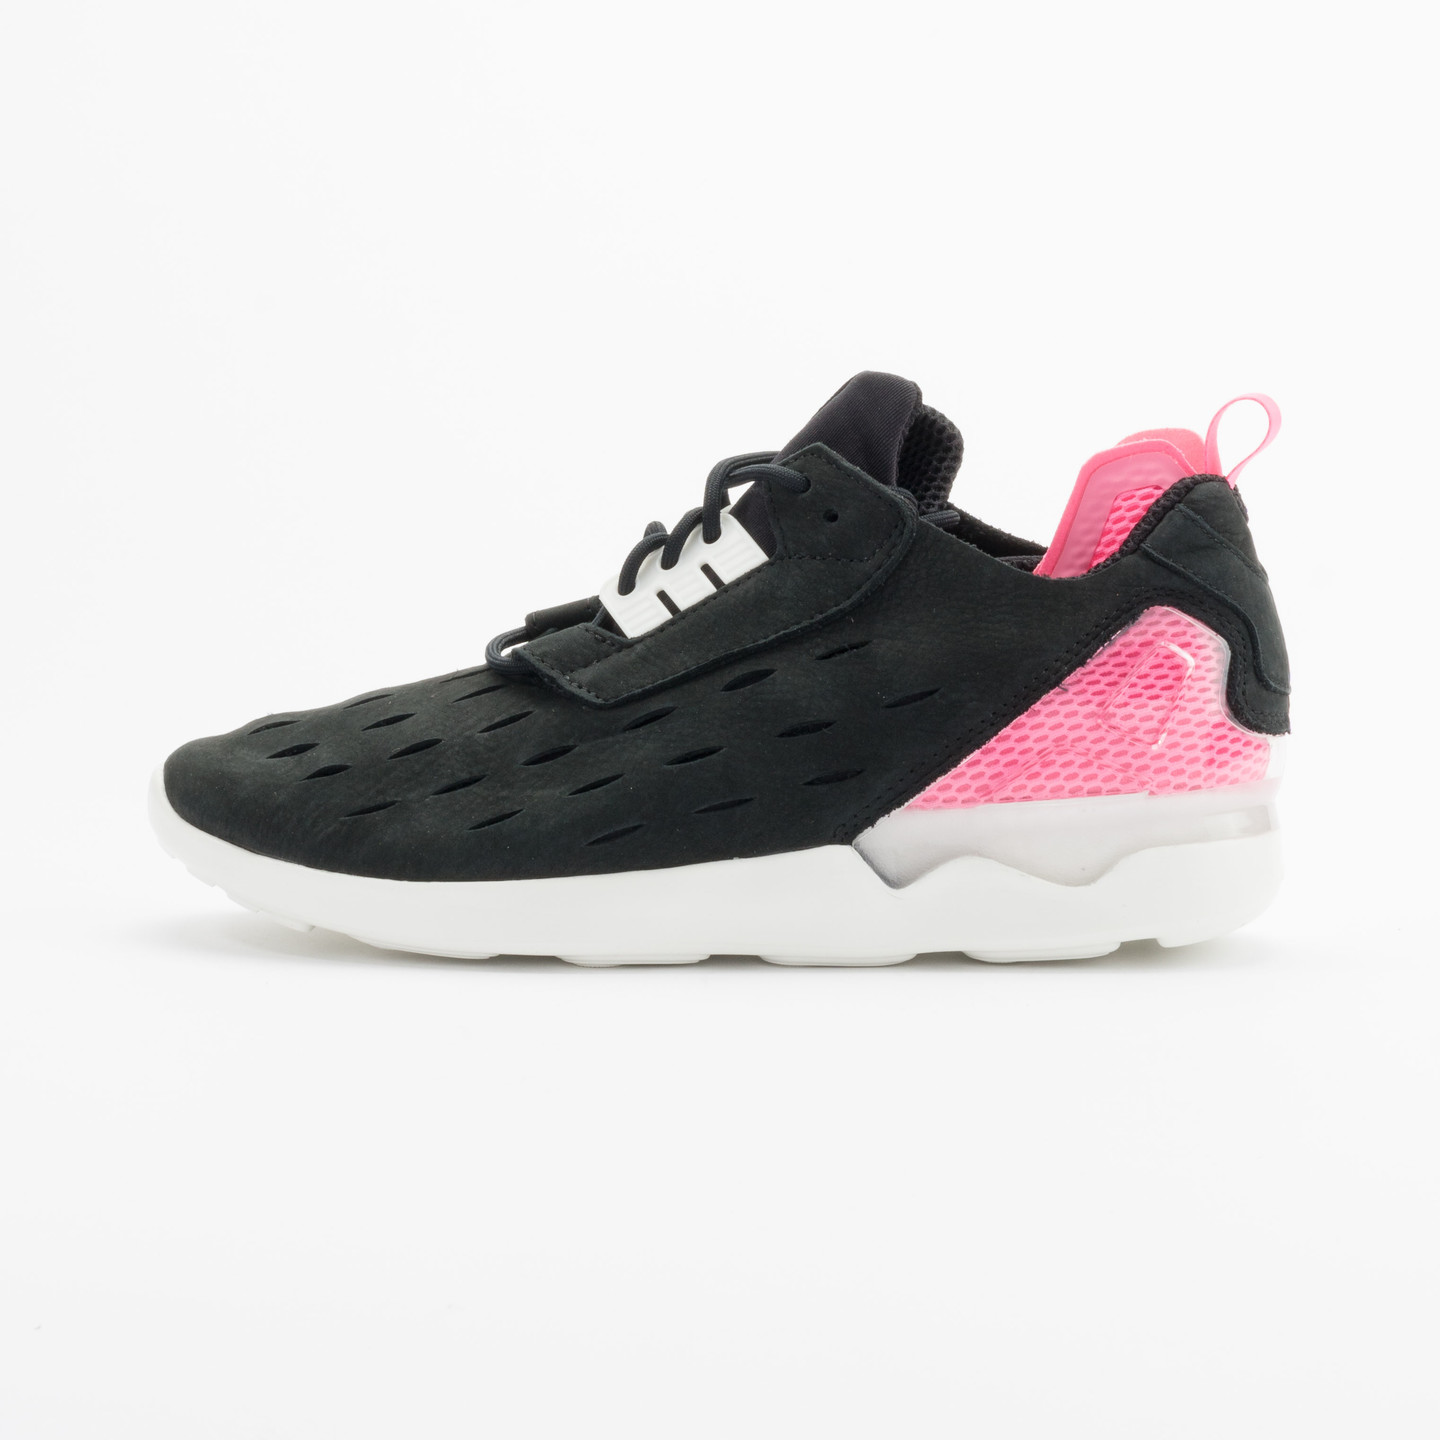 Adidas ZX 8000 Blue Boost Black/Hot-Pink/White B25872-44